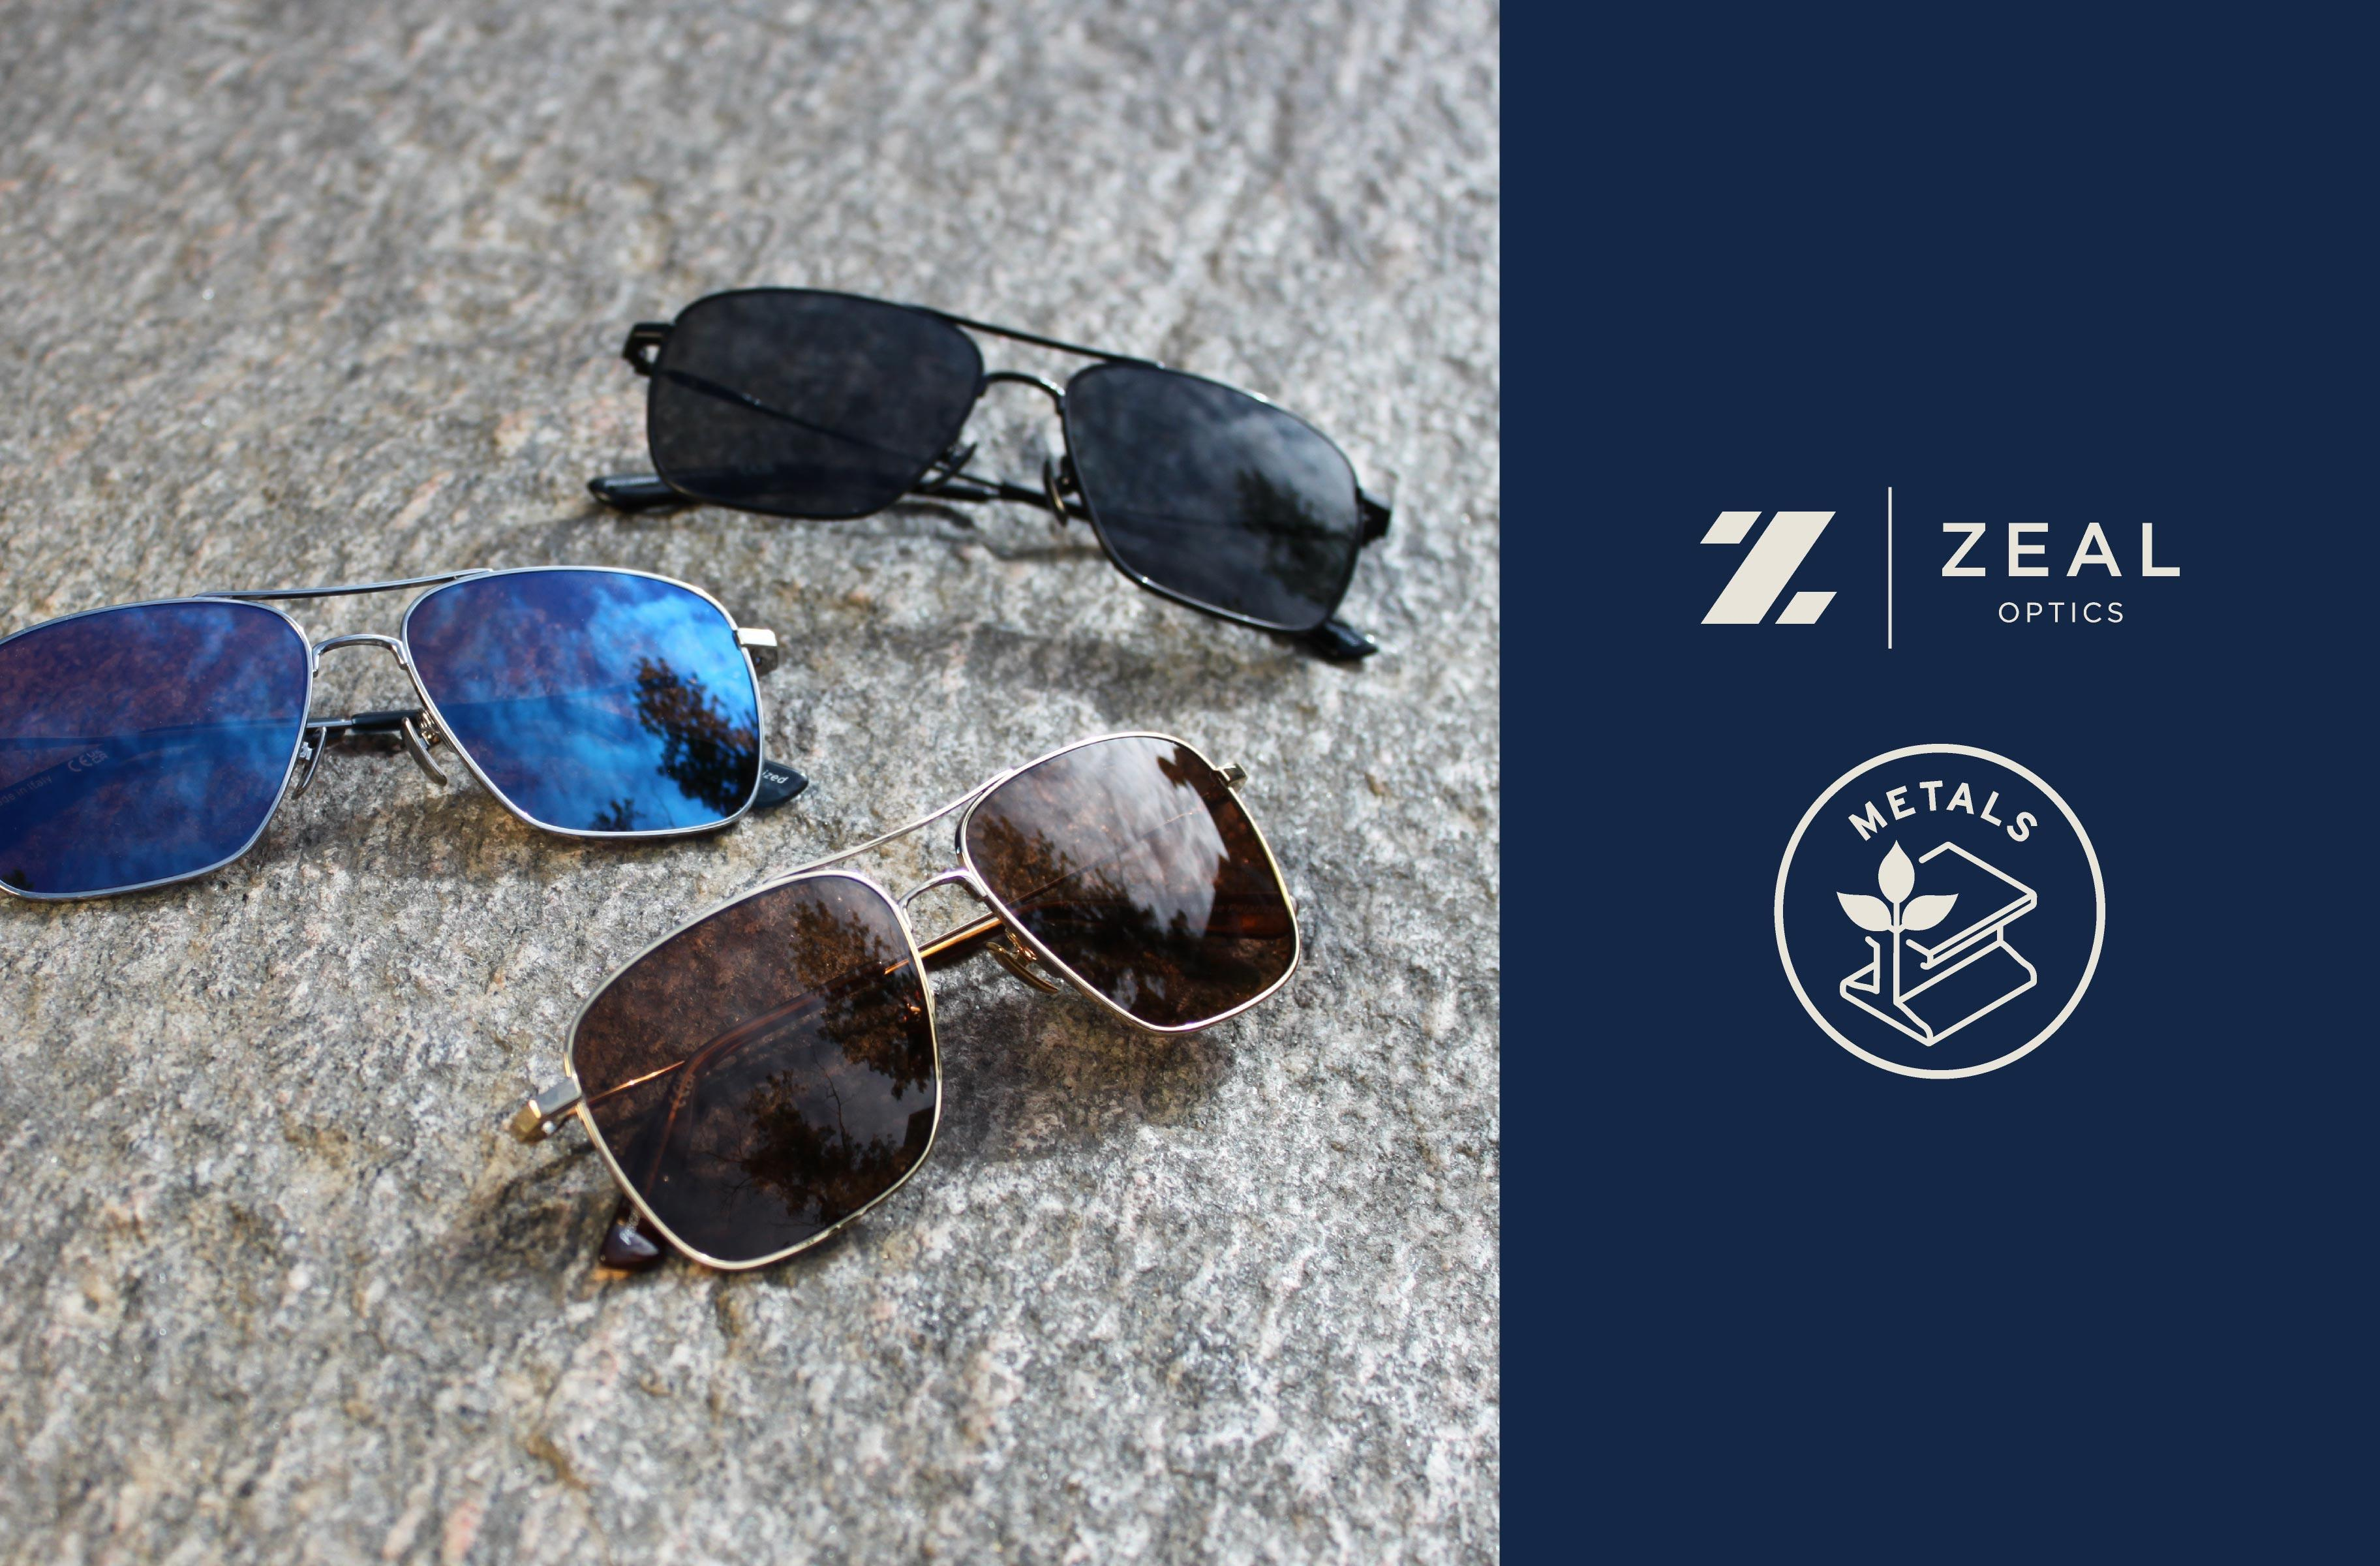 """Introducing the """"METALS"""" Frame Collection From ZEAL OPTICS!"""